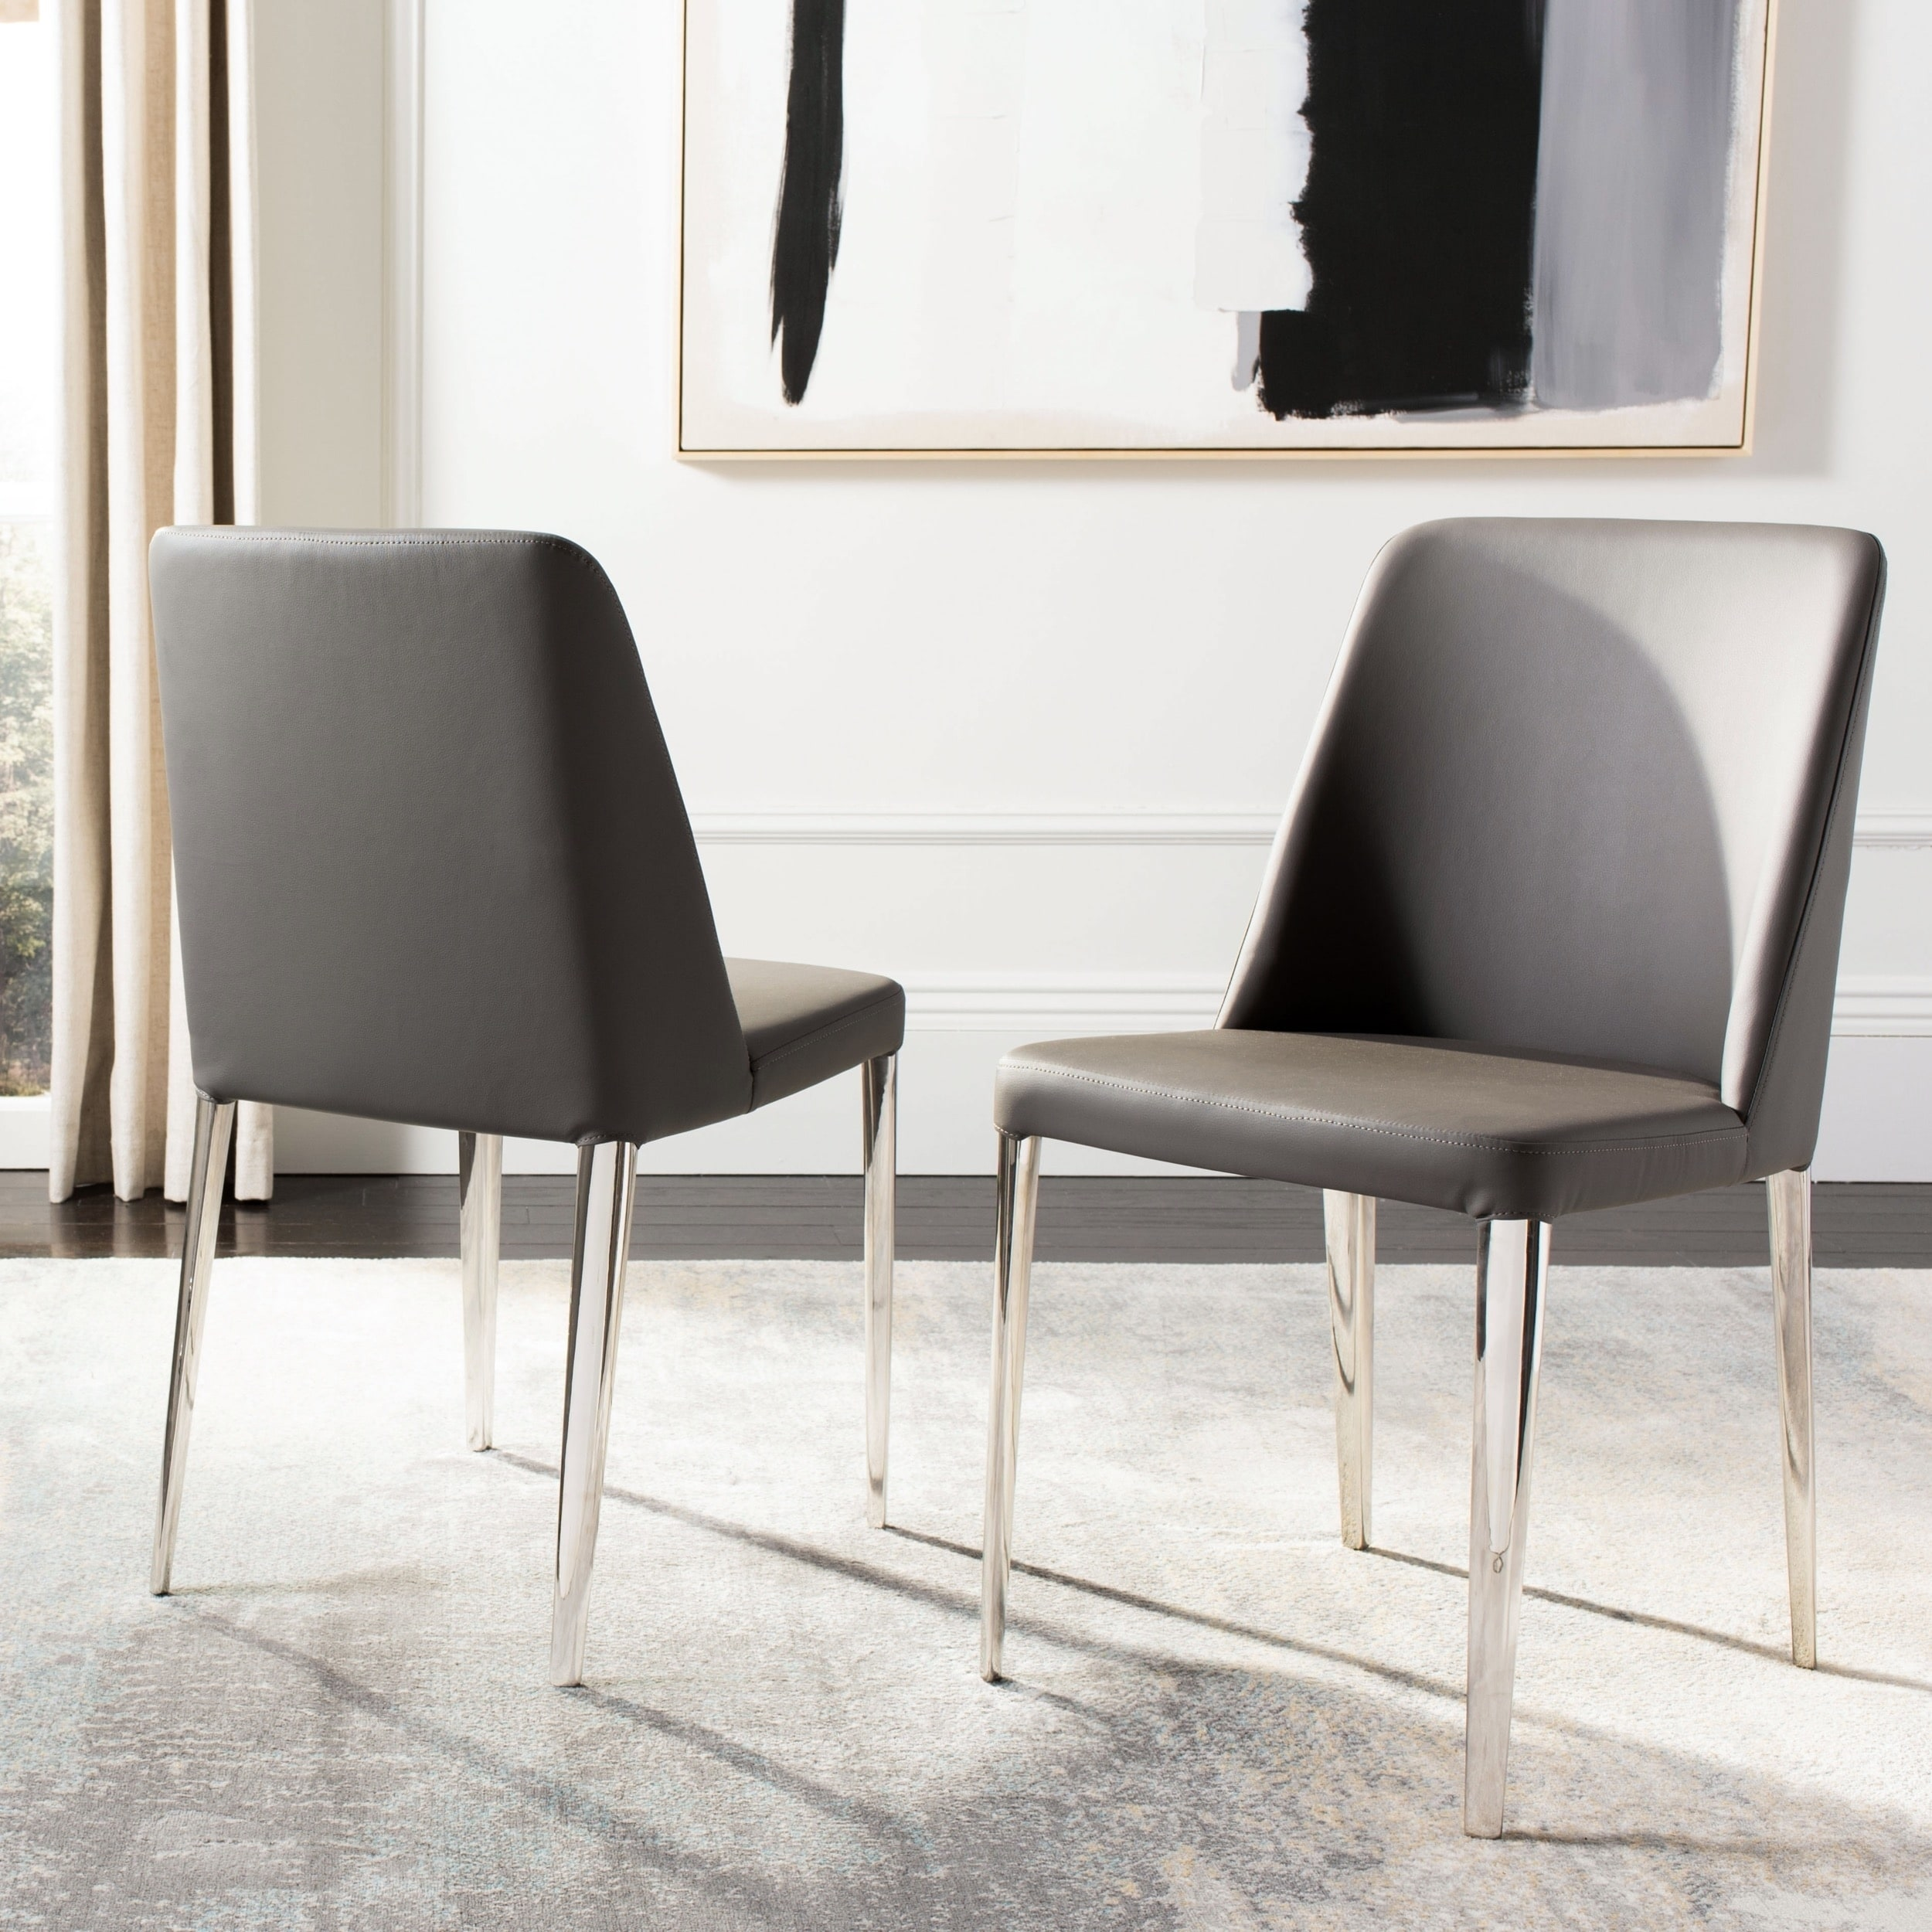 Incredible Safavieh Dining Mid Century Modern Baltic Grey Dining Chairs Set Of 2 Onthecornerstone Fun Painted Chair Ideas Images Onthecornerstoneorg